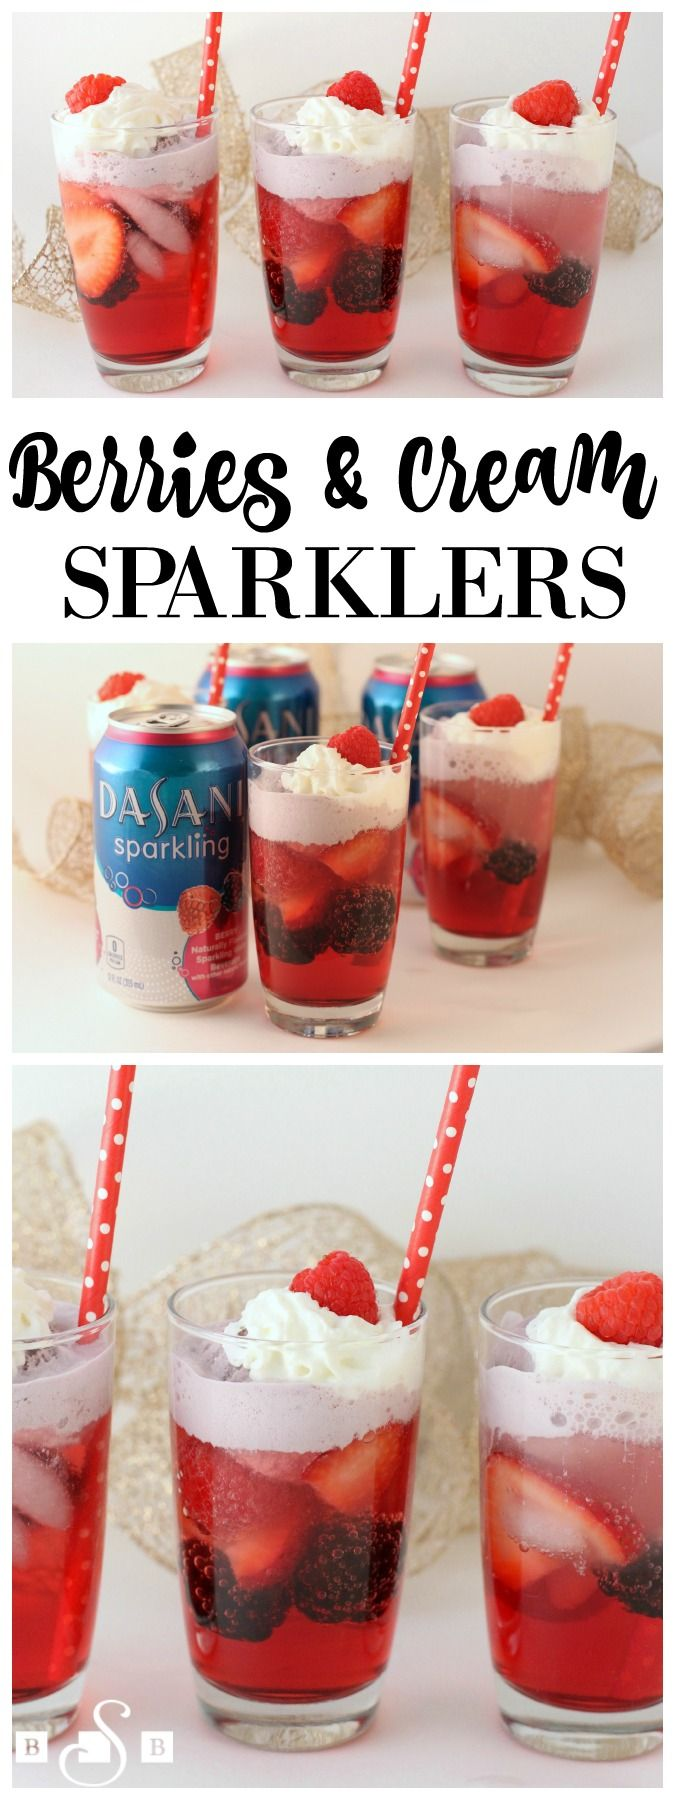 Berries & Cream Sparklers - Perfect recipe for a fun party drink. The kids would have so much fun with this and LOVE the whipped cream! #sparklingholidays AD